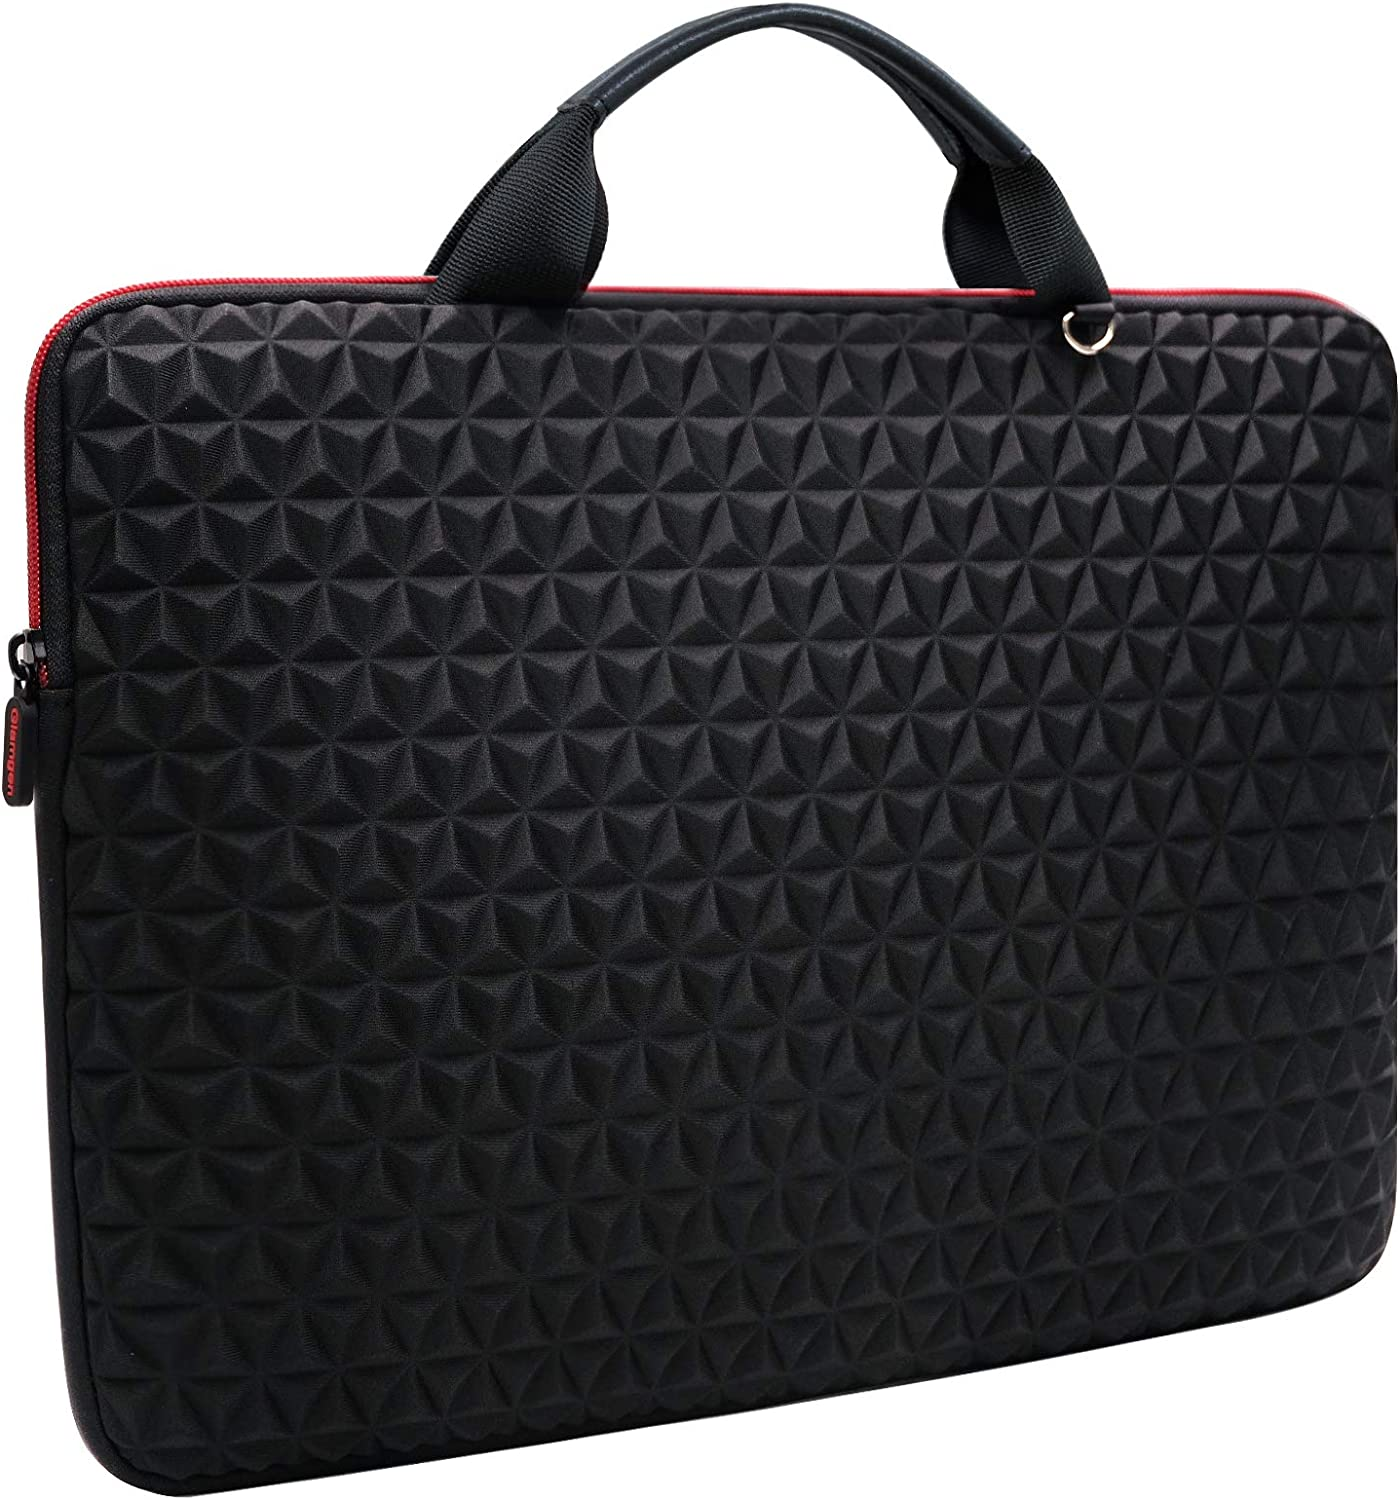 Laptop Sleeve Case 15.6 Inch, Water Resistant Slim Computer Bag for 15.6 inch Lenovo, HP, Dell, Asus Notebook,Samsung, Sony, Chromebook, Ultrabook,Gifts for Men and Women, Black